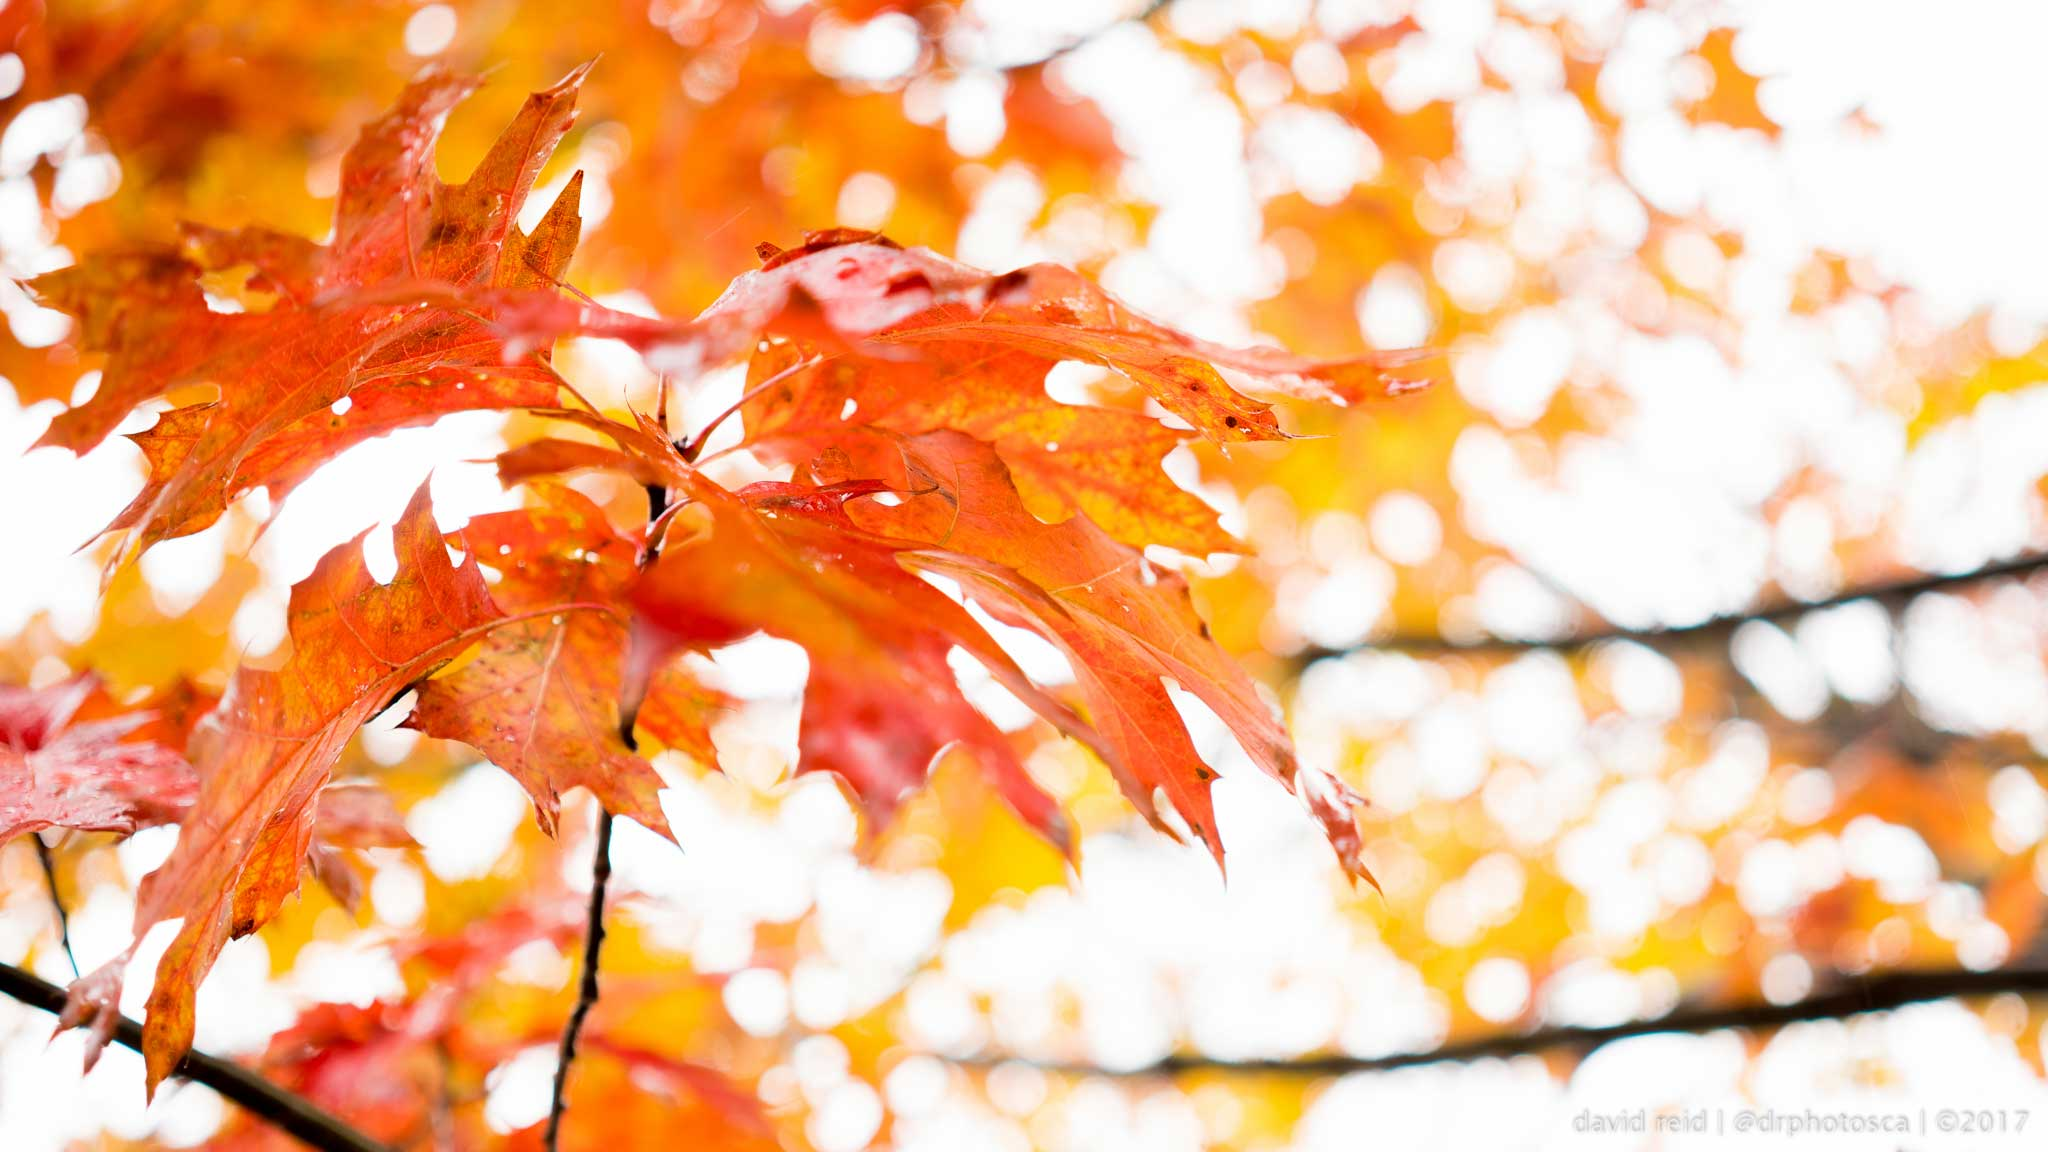 Learn how to take better fall photos